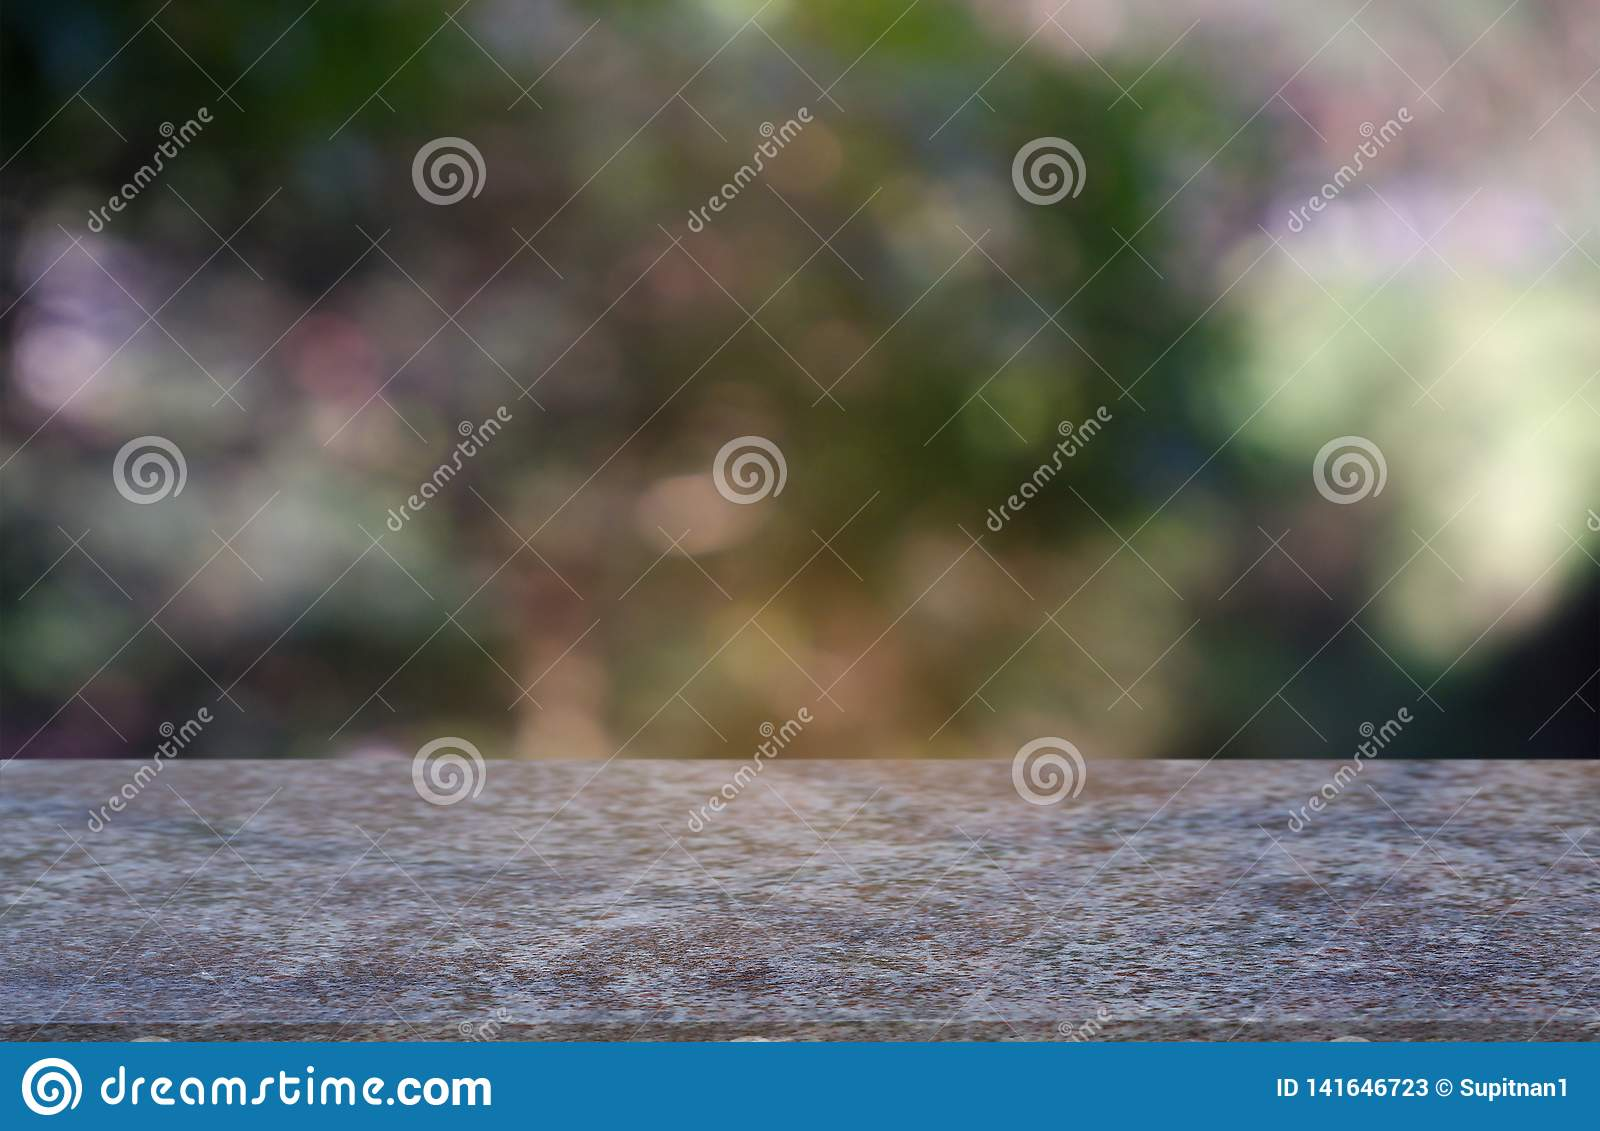 Empty marblestone table in front of abstract blurred green of garden and nature light background. For montage product display or